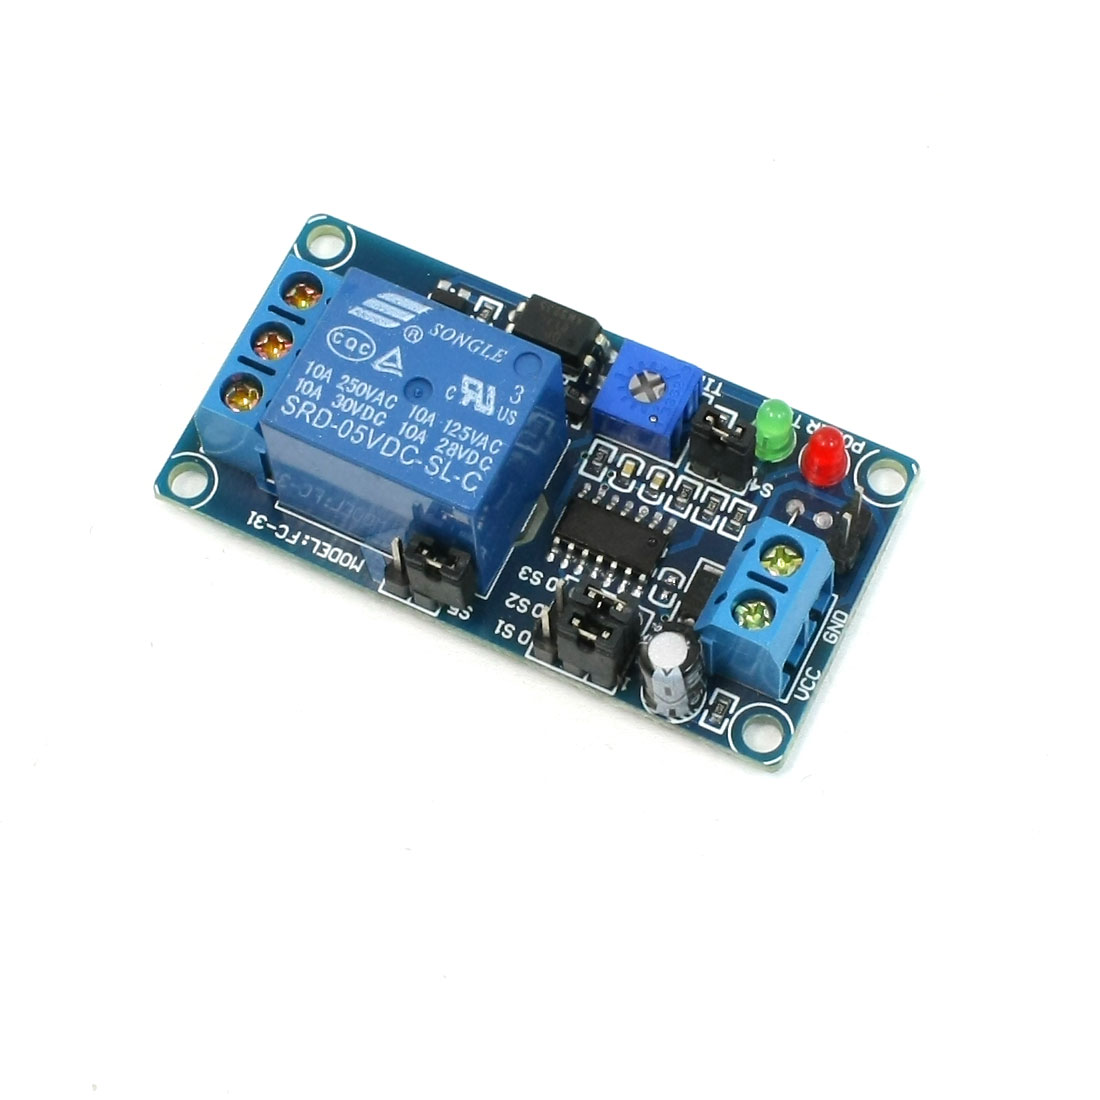 DC 5V Circulate Time Relay Module Control Board SRD-5VDC-SL-C